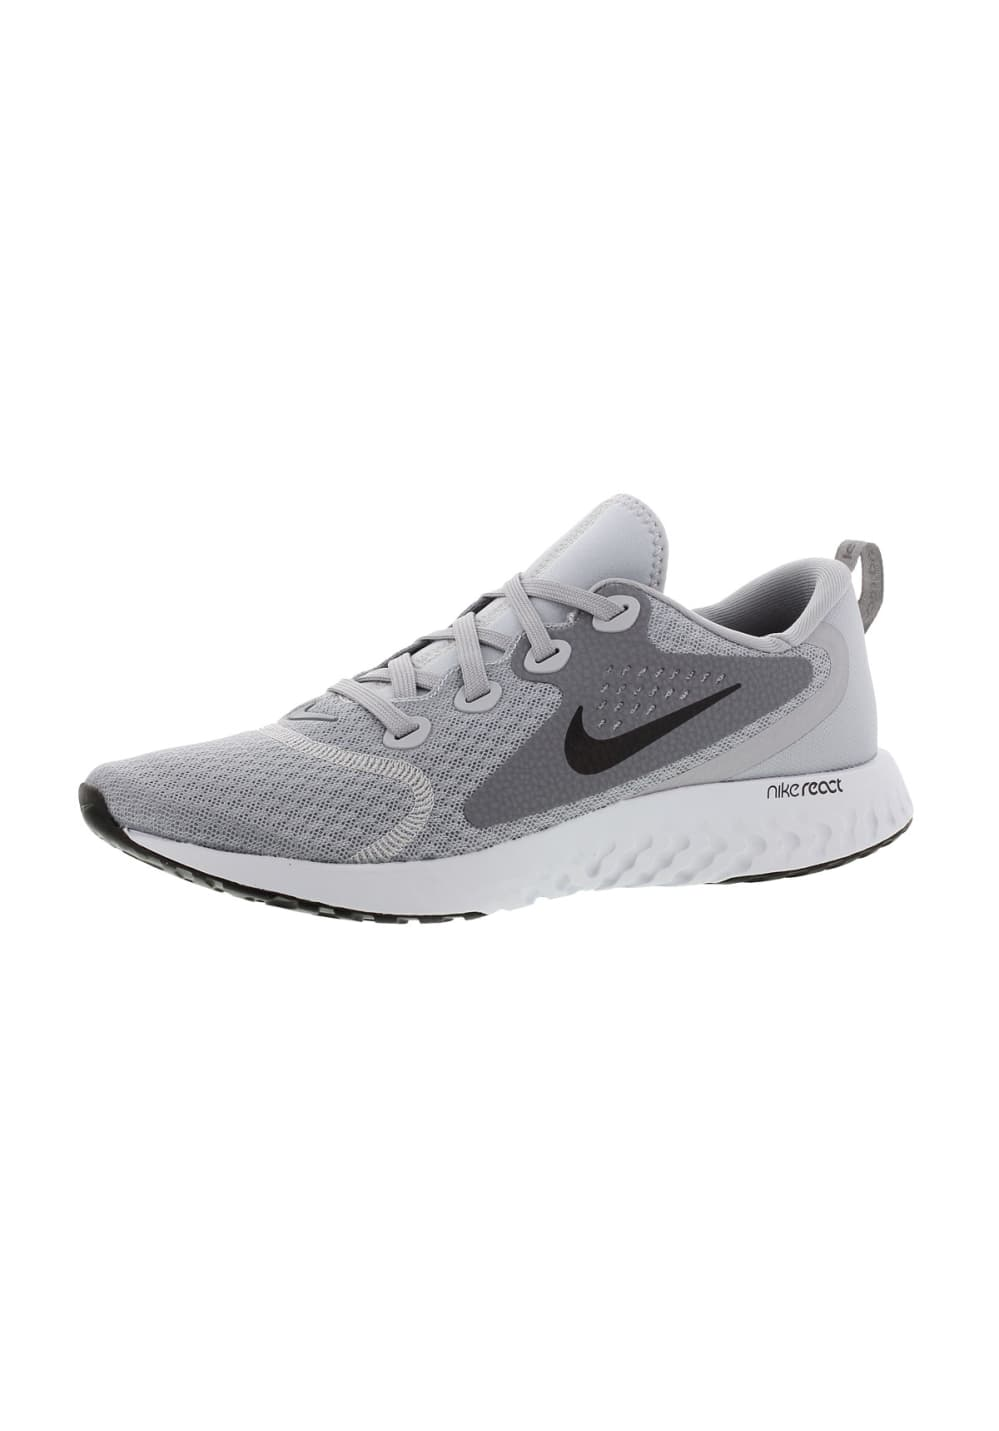 best website d2ee9 0060f Gris 21run Femme React Running Nike Pour Chaussures Legend z